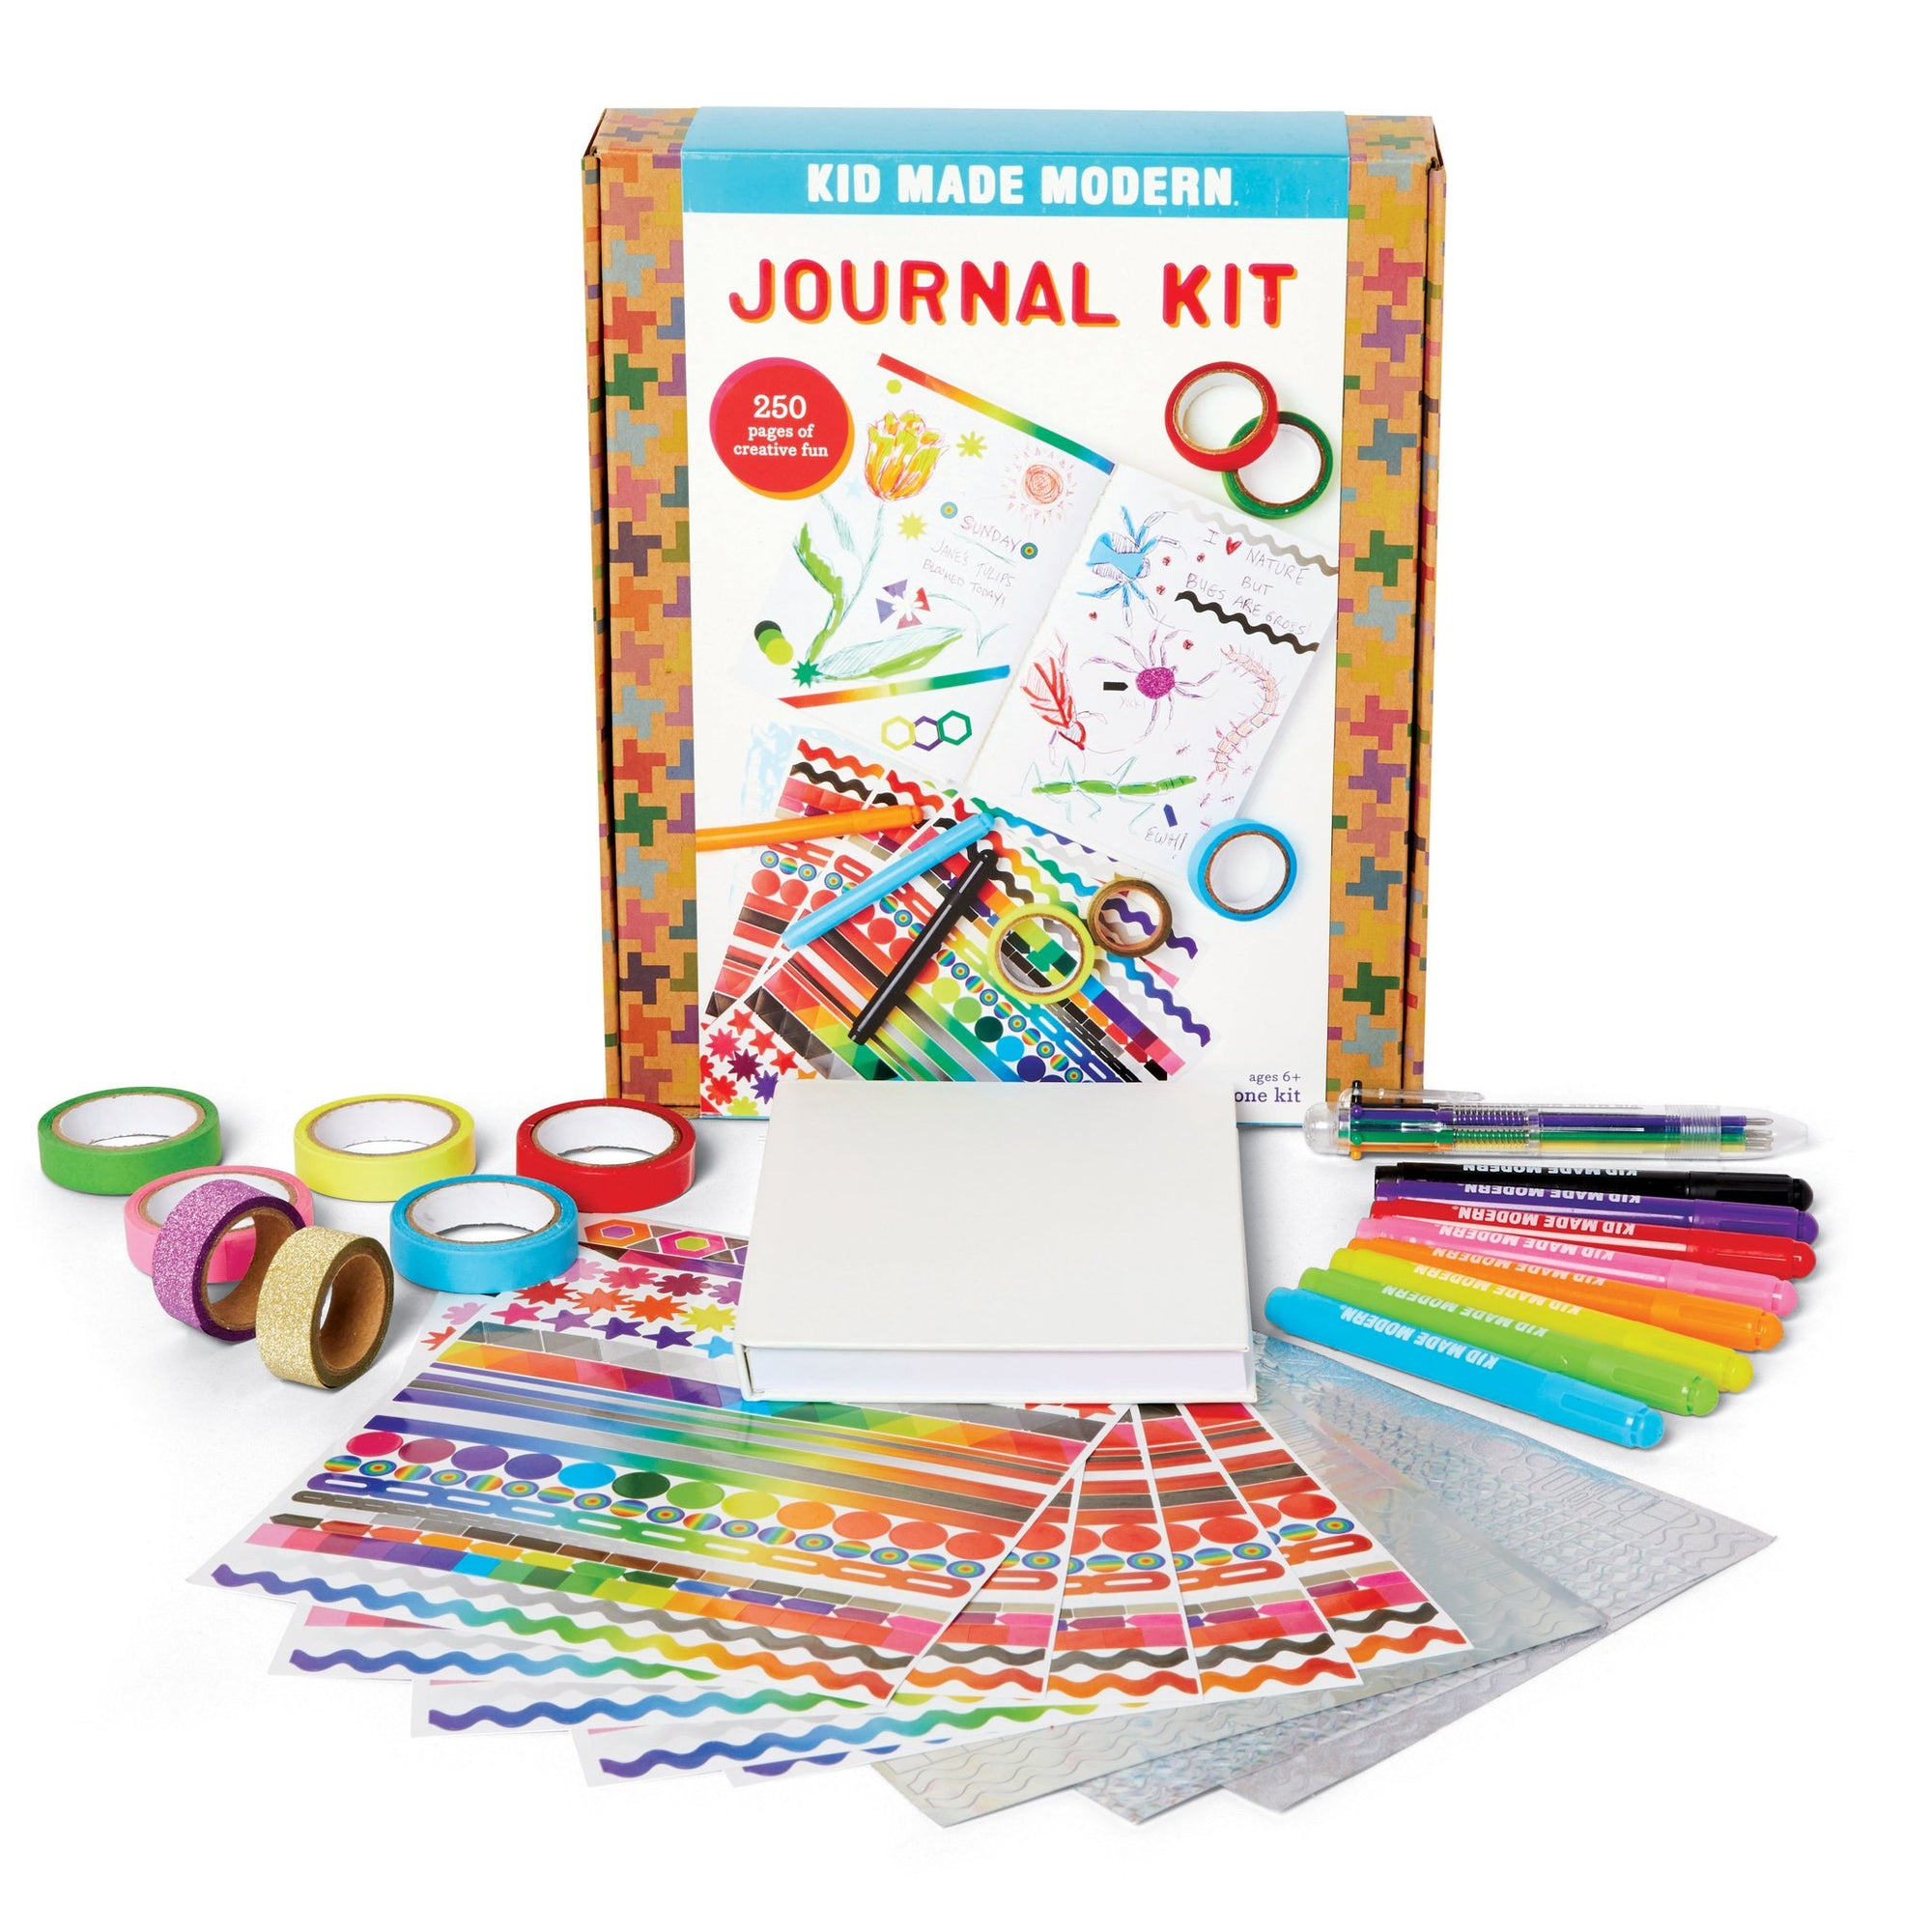 Kid Made Modern Journal Kit